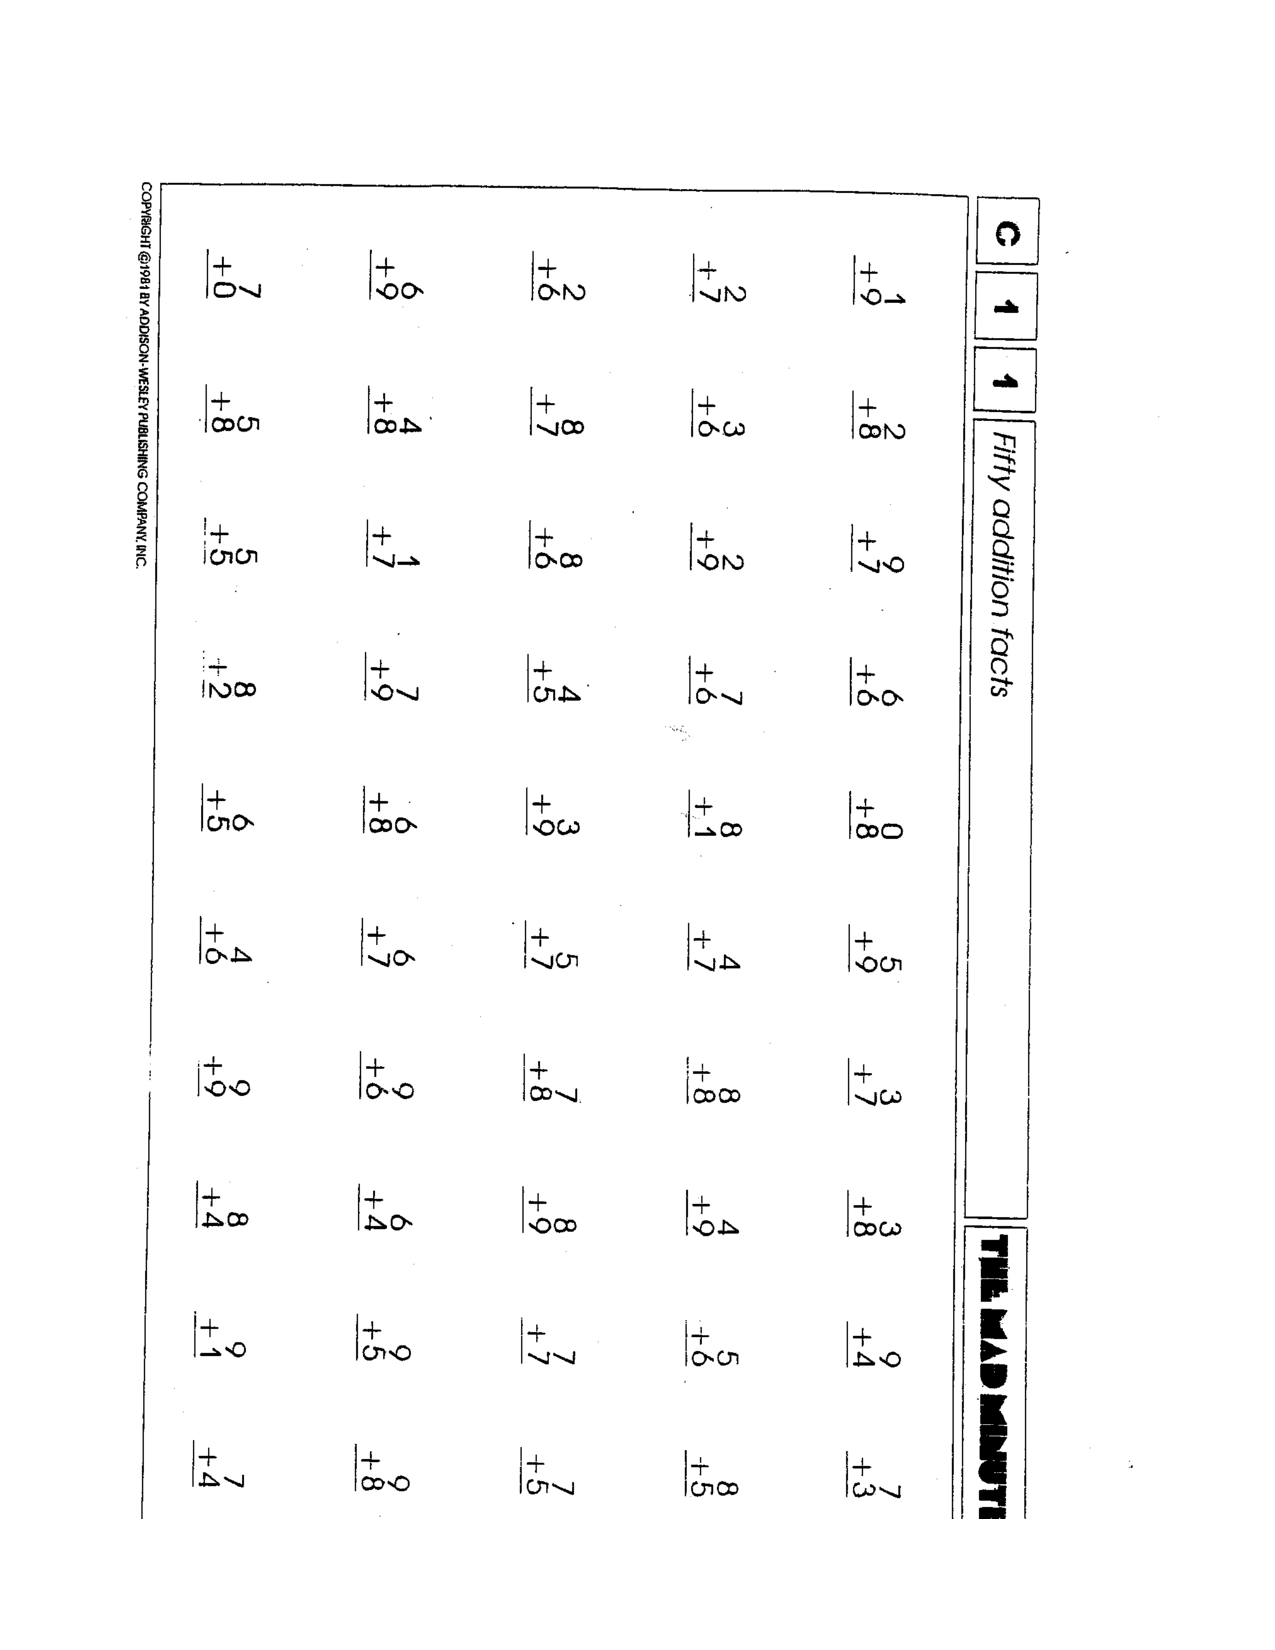 Worksheet Math Division Worksheets For 4th Grade worksheet fourth grade division noconformity free 4th math worksheets multiplication and worksheets